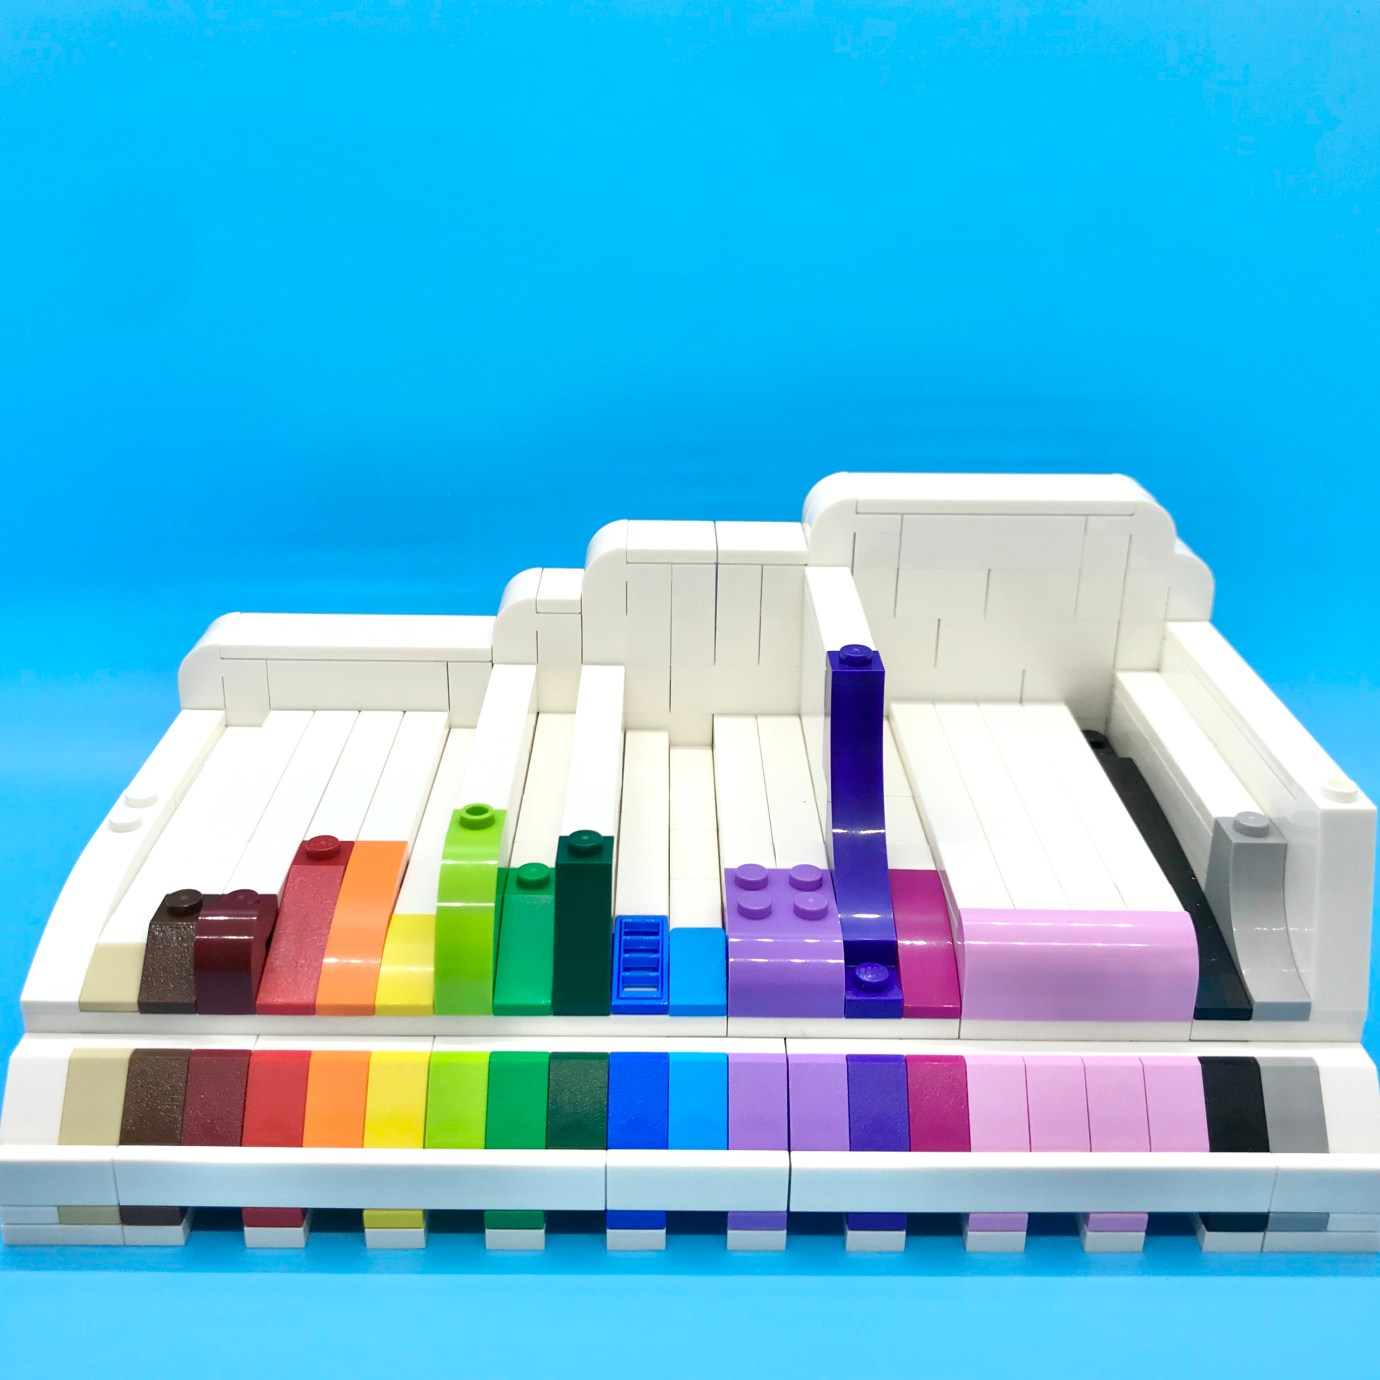 A LEGO slope display, with different slope elements and in a pleasing color order. Front view.